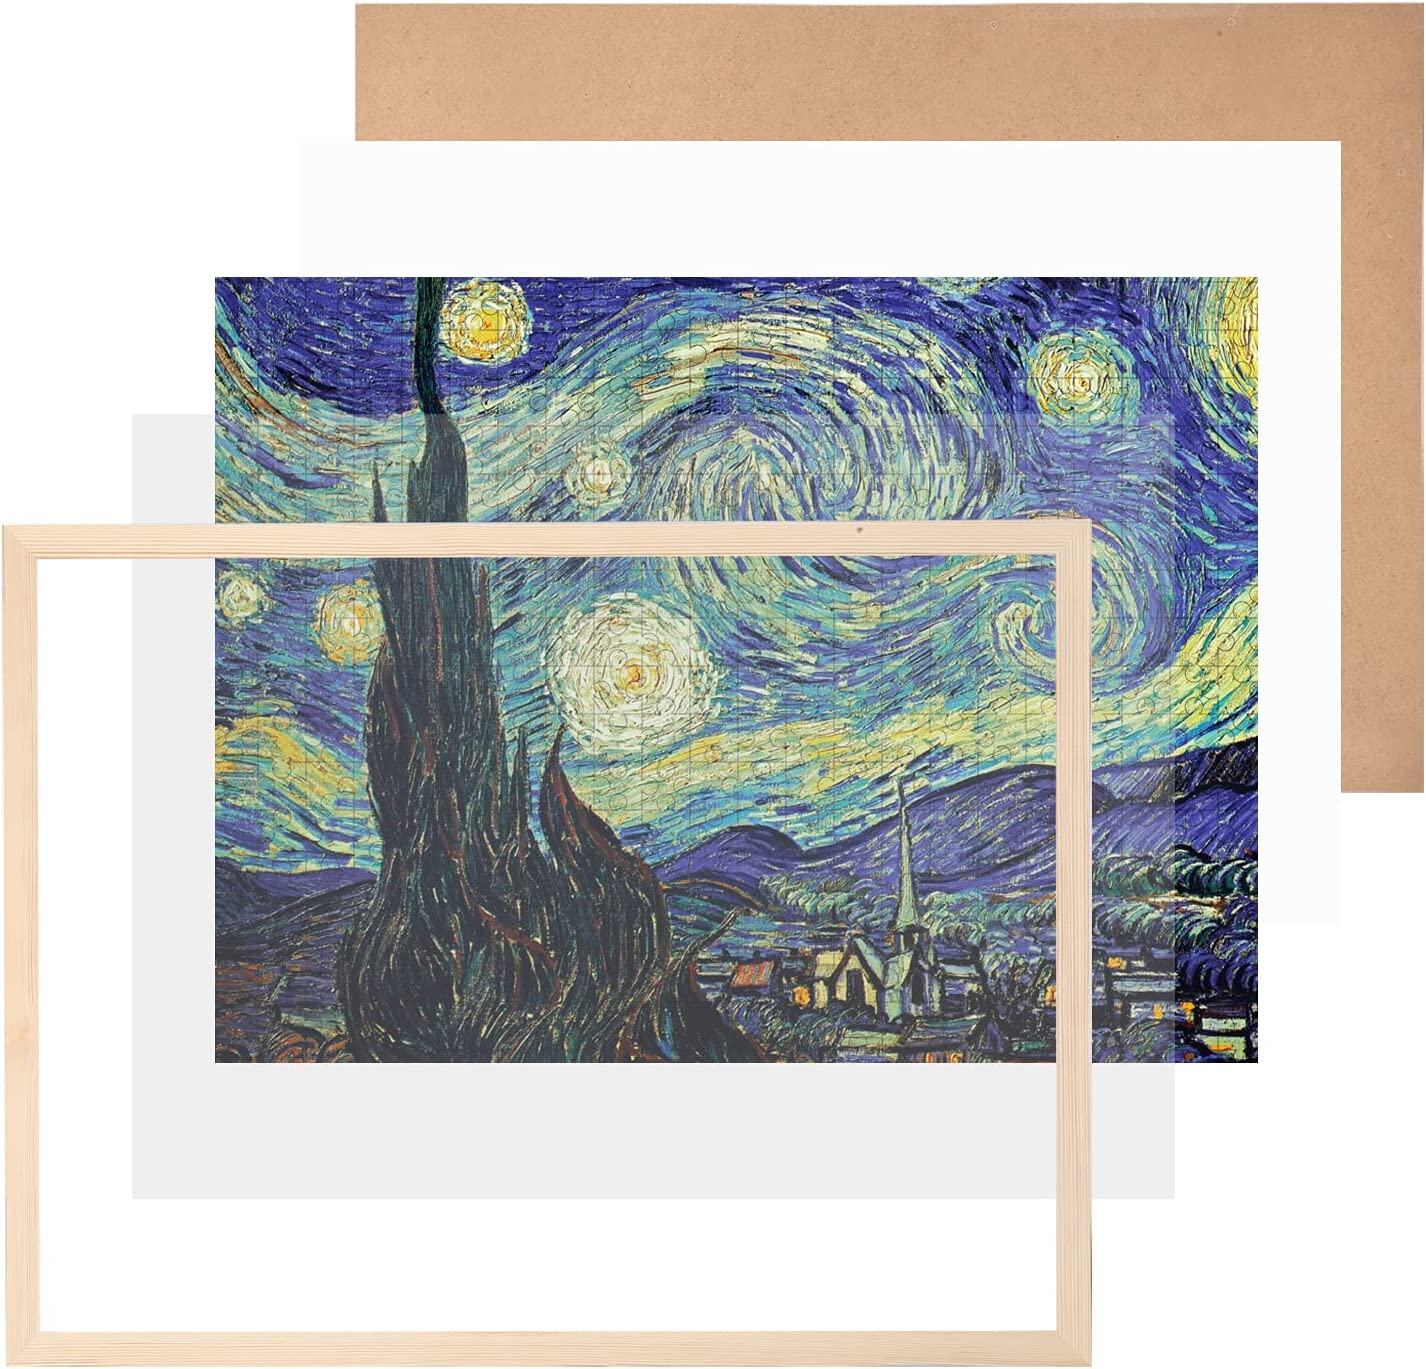 Puzzle Discount is also underway Frame 20 x 27 Inch F Poster Max 78% OFF for Pine Wooden